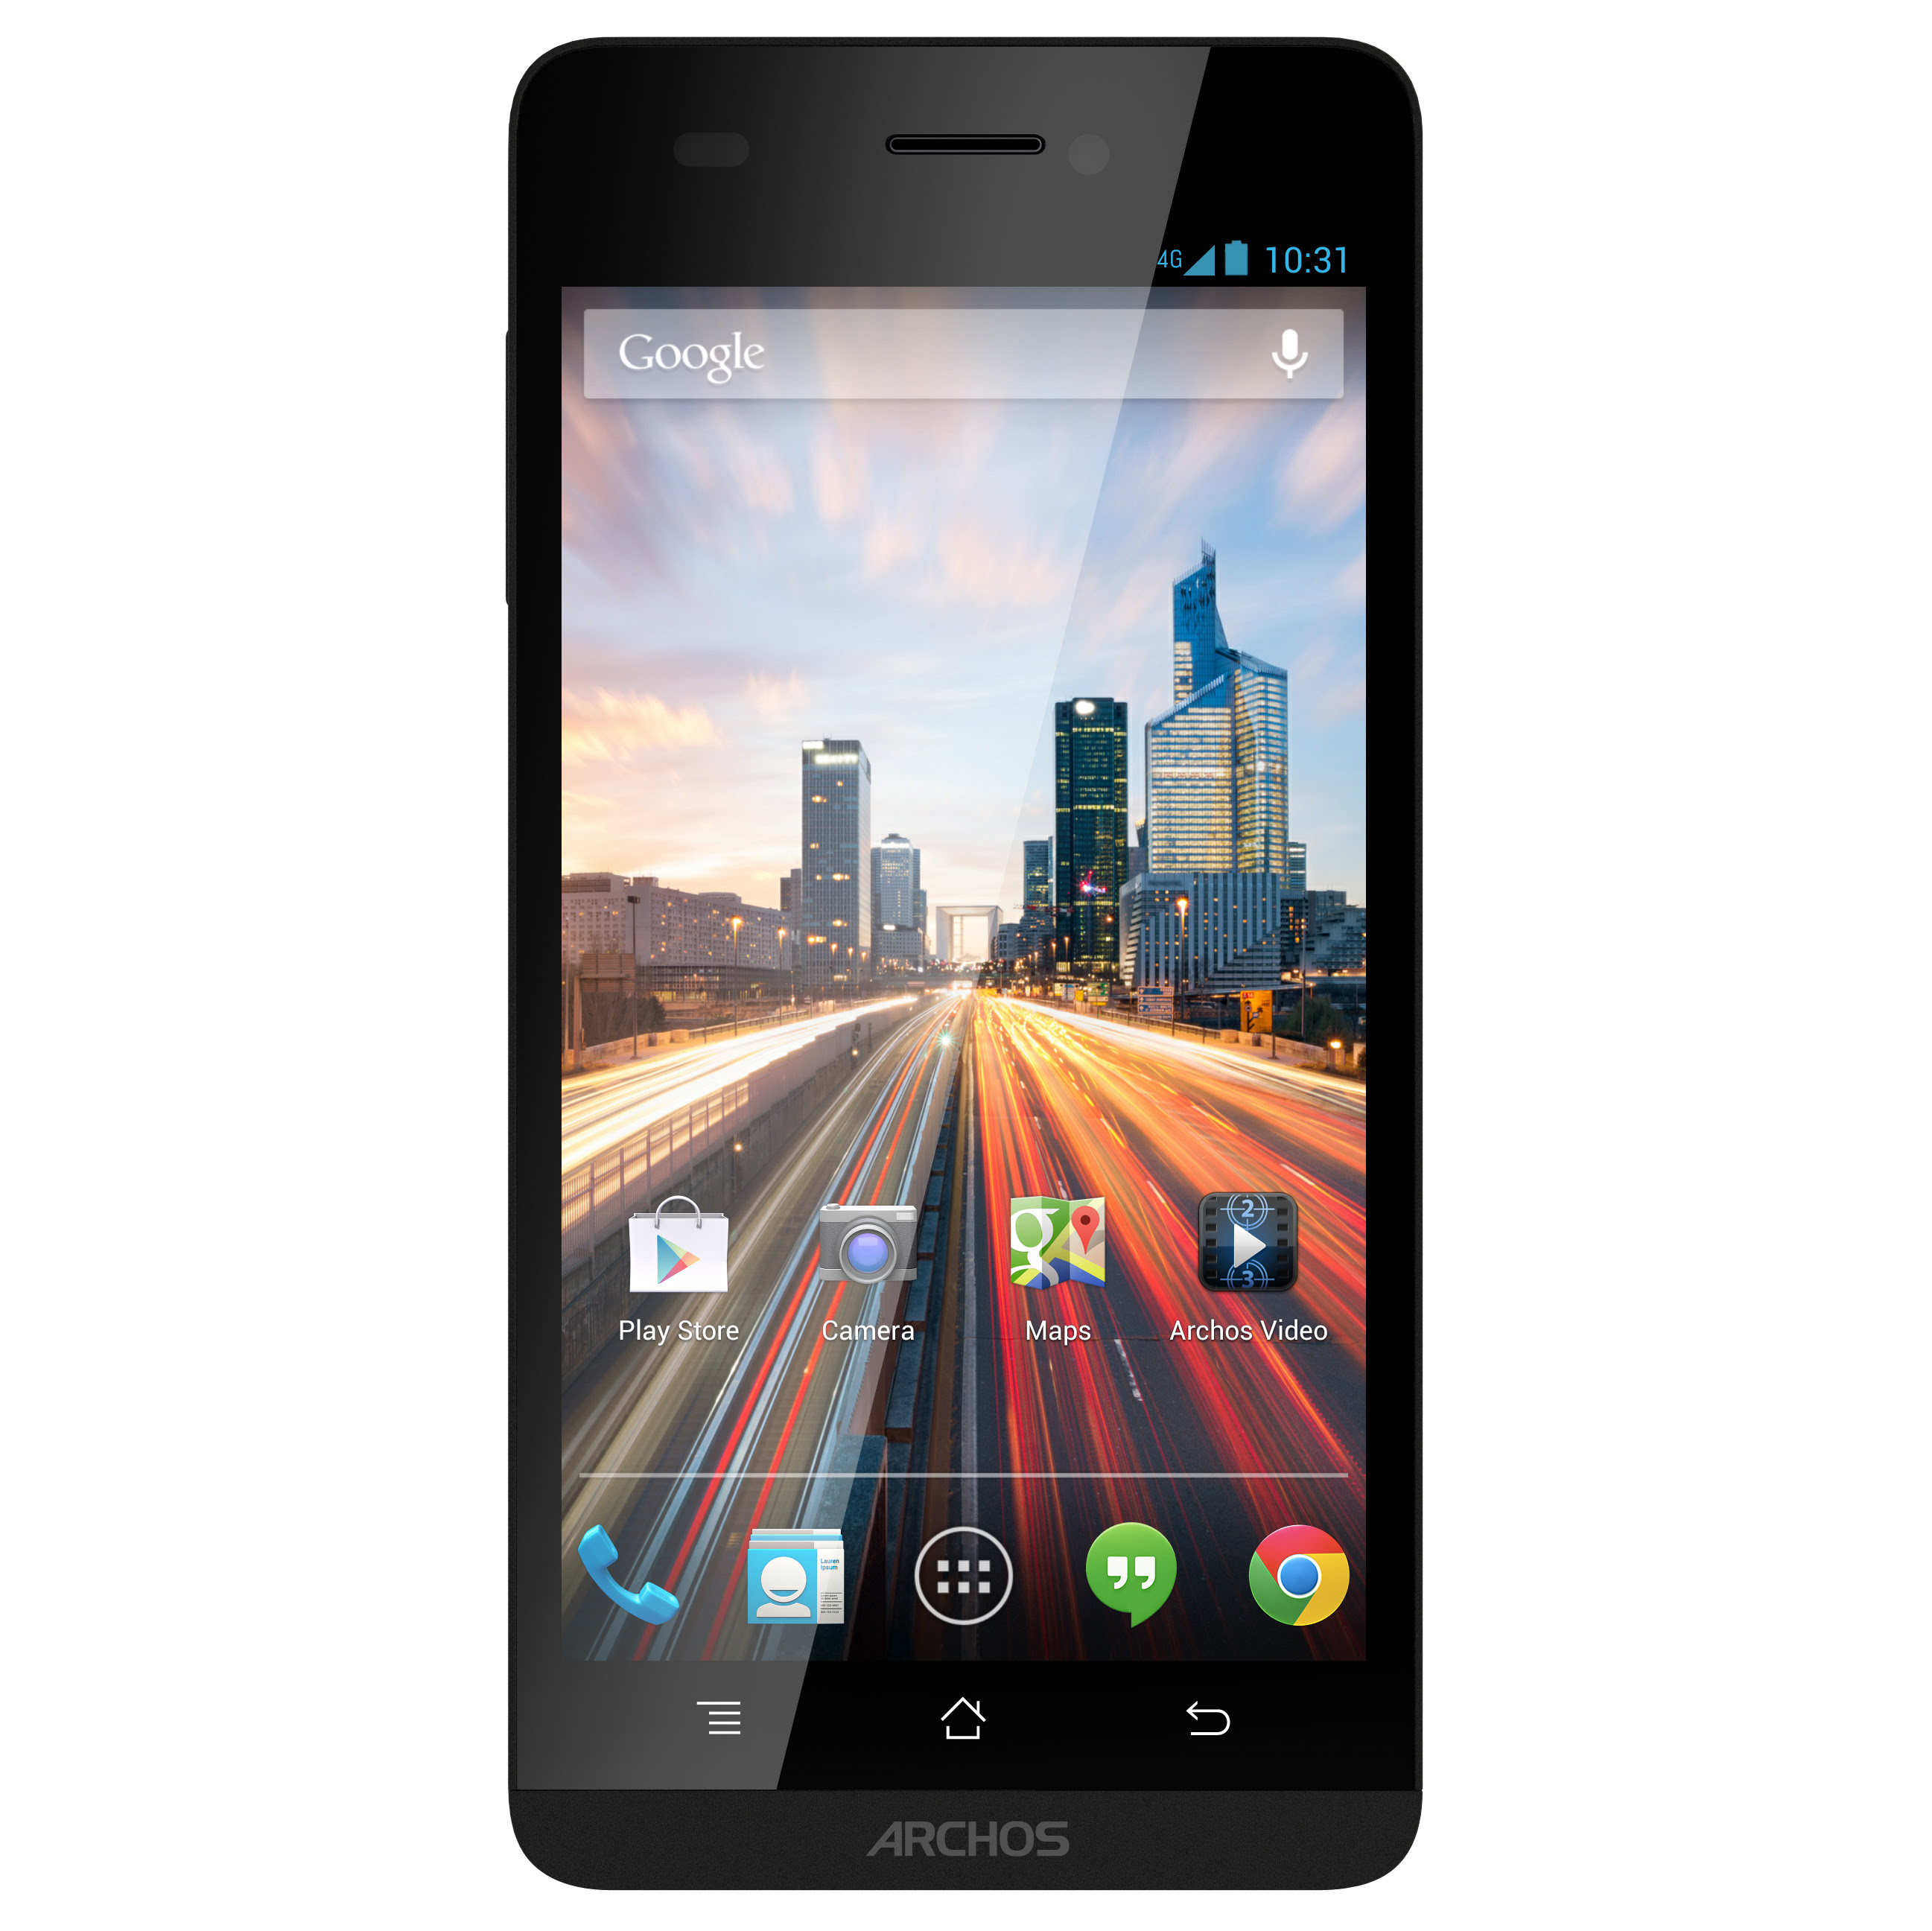 Phone Newest Android Phone 2014 archos to show off two new 4g phones at ces androidguys archos